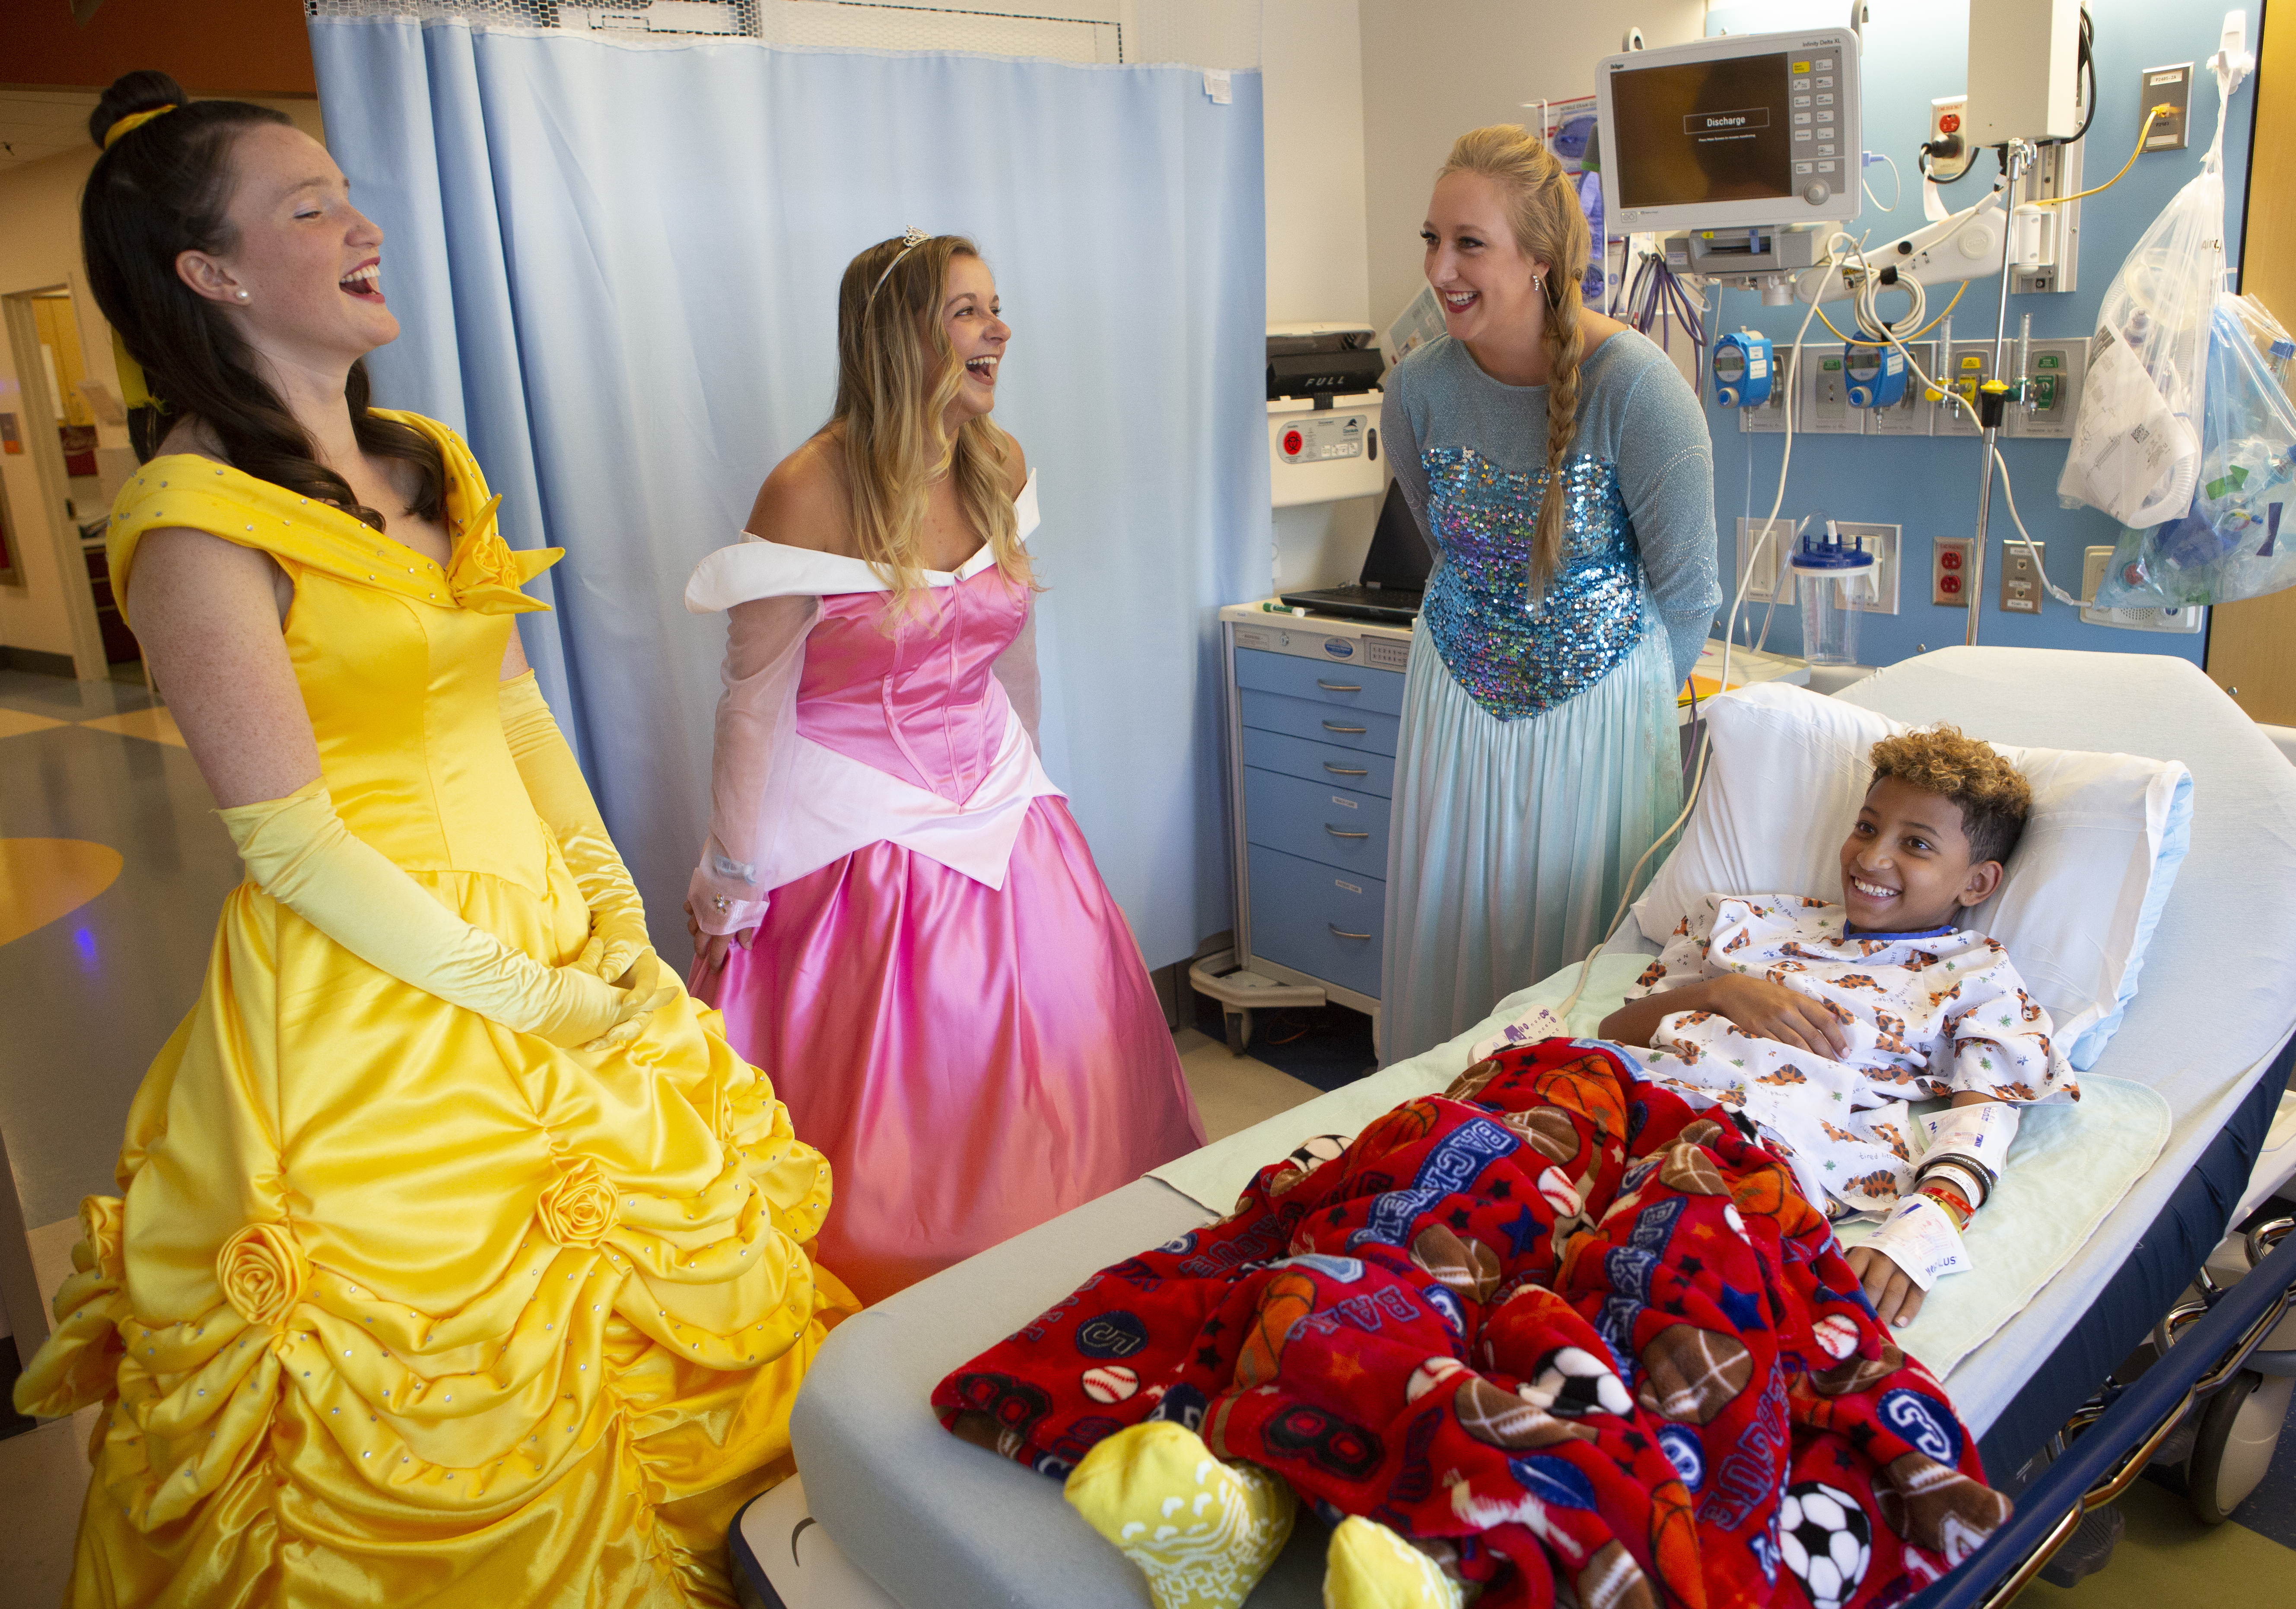 Three women dressed in princess costumes visit an 11-year-old boy at Penn State Children's Hospital. All four are laughing. The boy is lying in a hospital bed covered with a sports blanket.Three women dressed in princess costumes visit an 11-year-old boy at Penn State Children's Hospital. All four are laughing. The boy is lying in a hospital bed covered with a sports blanket.